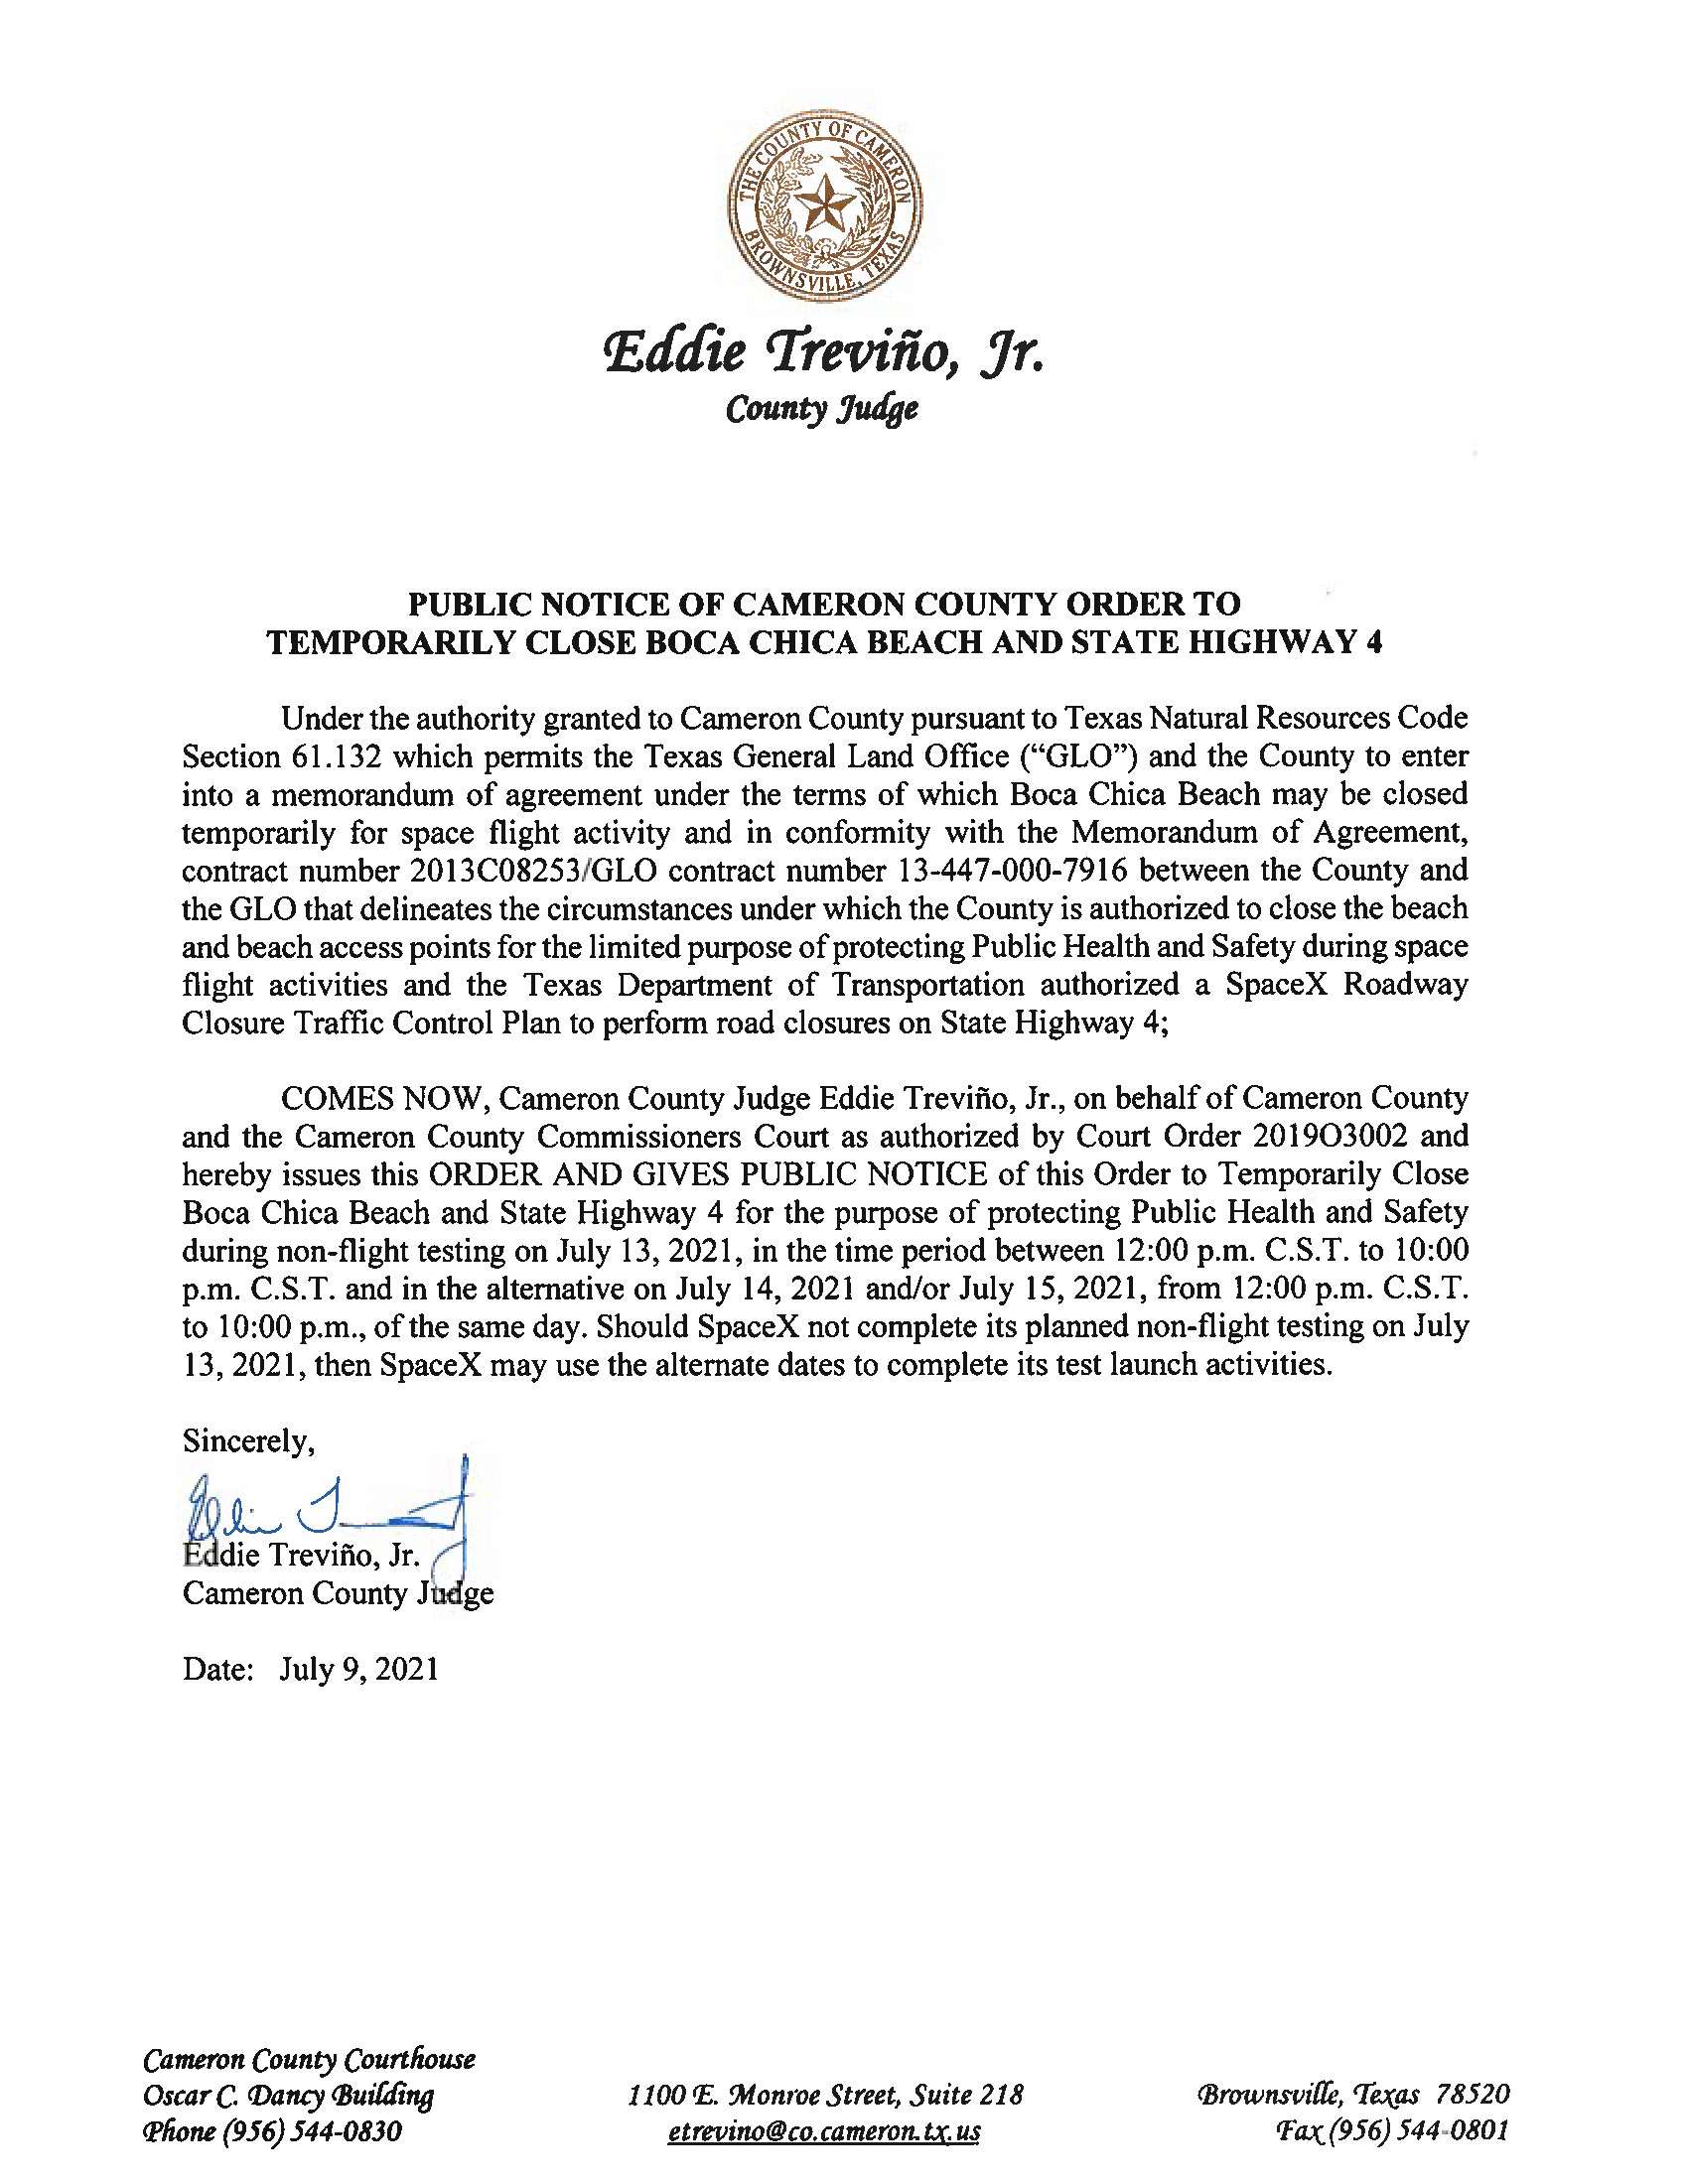 PUBLIC NOTICE OF CAMERON COUNTY ORDER TO TEMP. BEACH CLOSURE AND HWY.07.13.2021